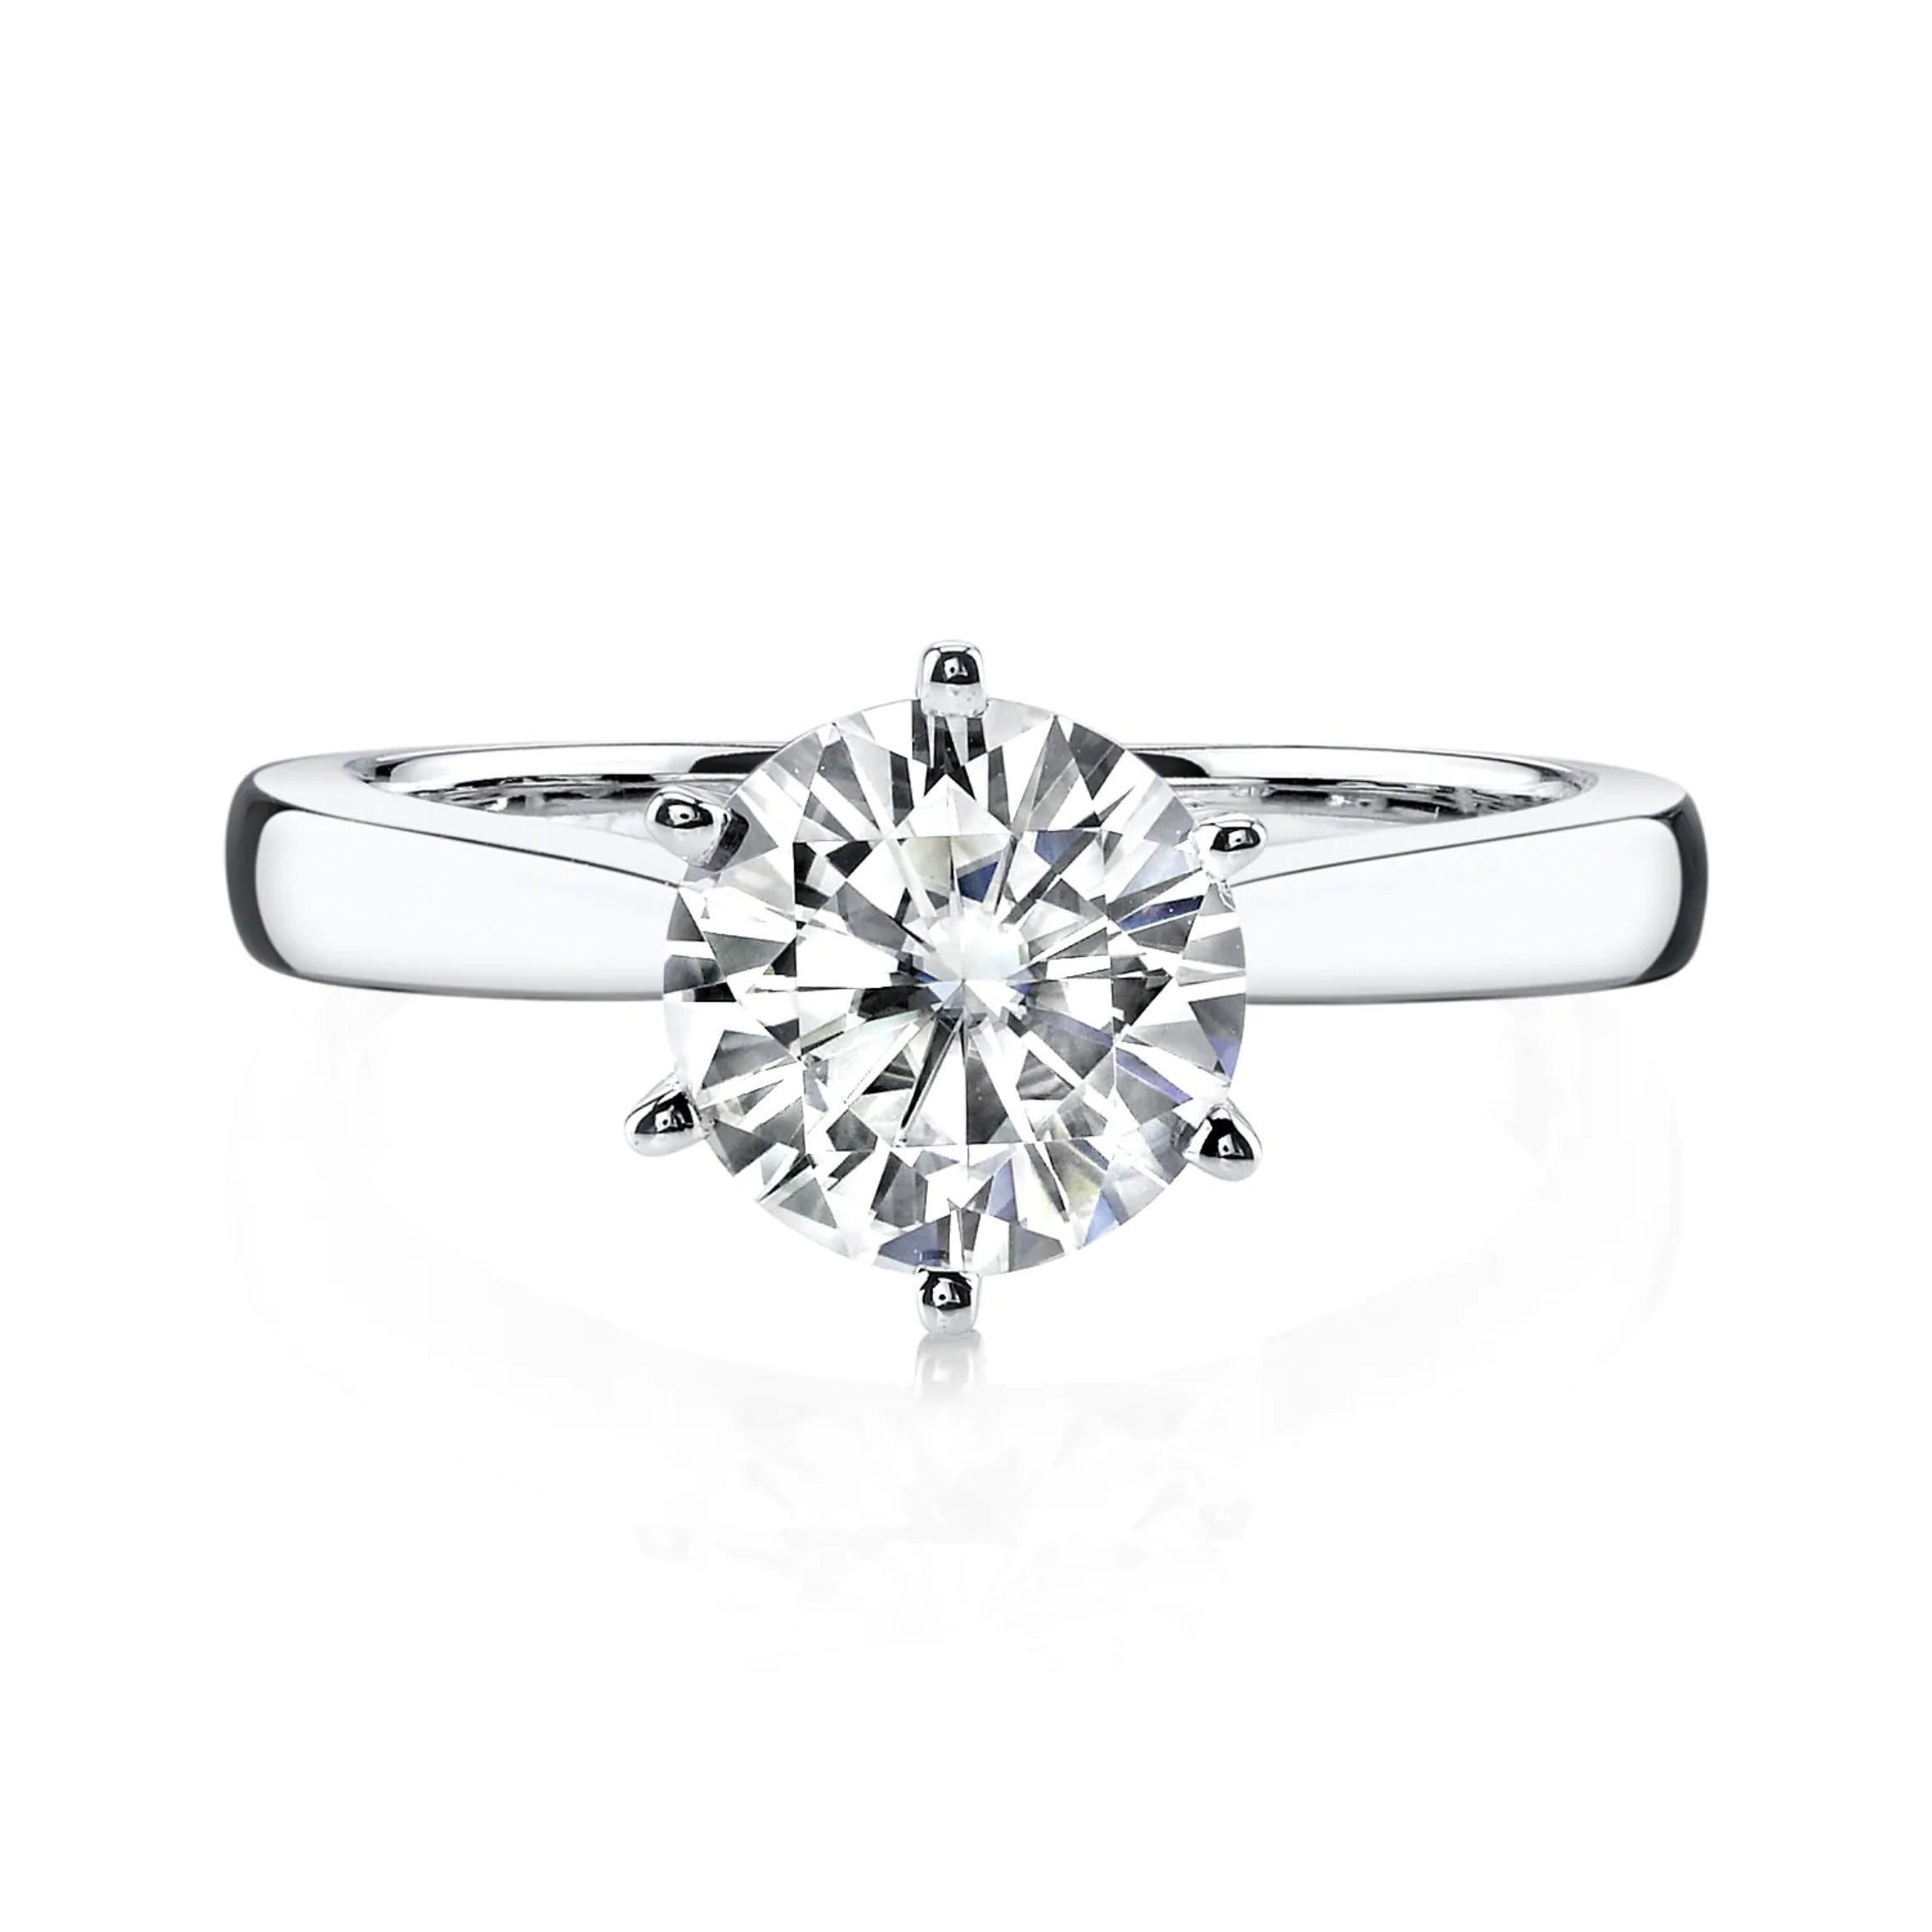 Real 14k White Gold Ring 1.90 Ct Diamond Solitaire Engagement Band Sets Size N Clearance Price Other Fine Rings